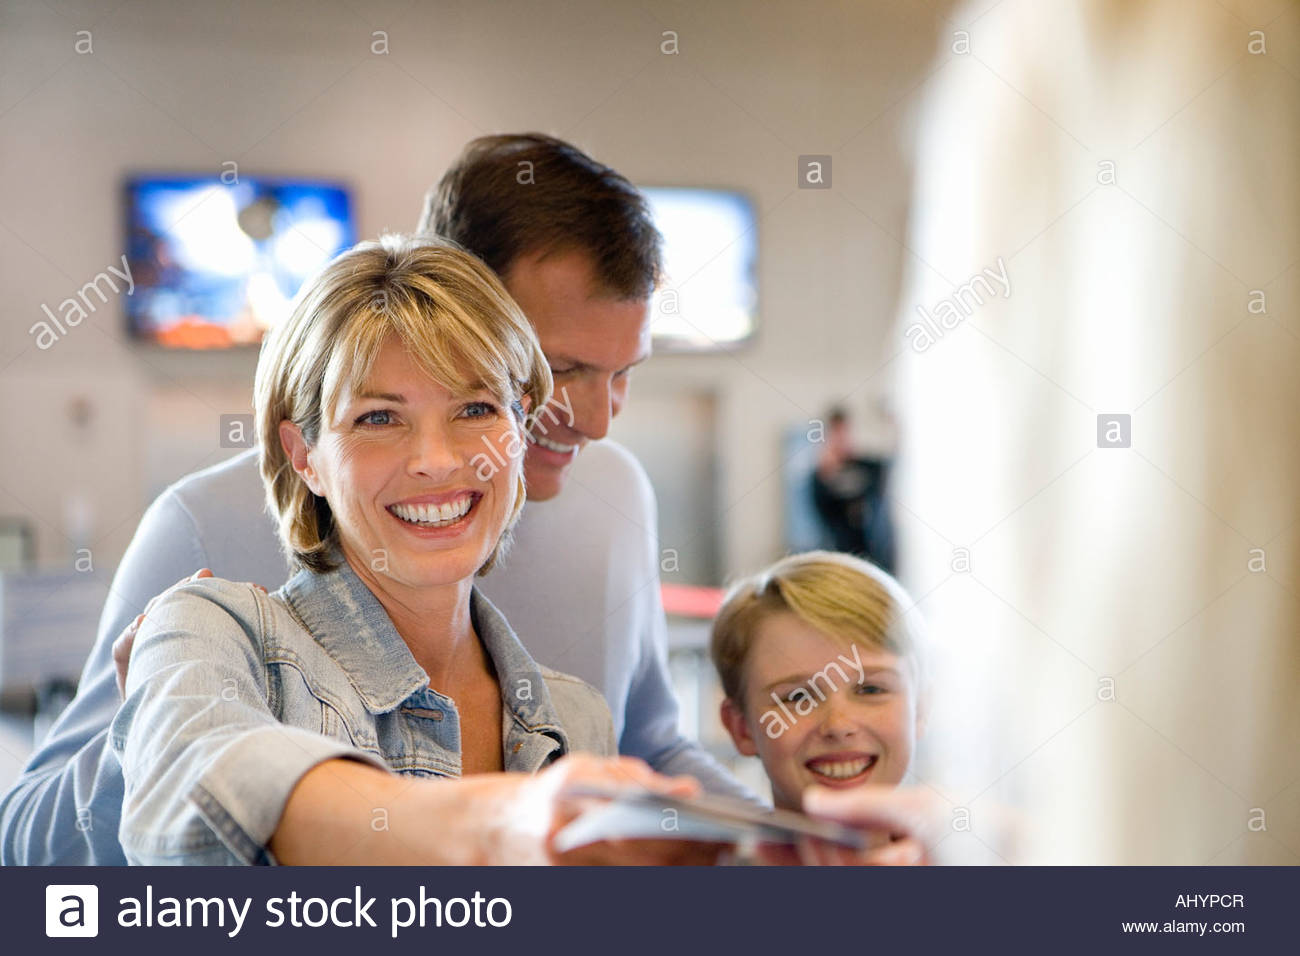 Family standing at airport check-in desk, woman handing passports to check-in attendant, smiling differential focus - Stock Image